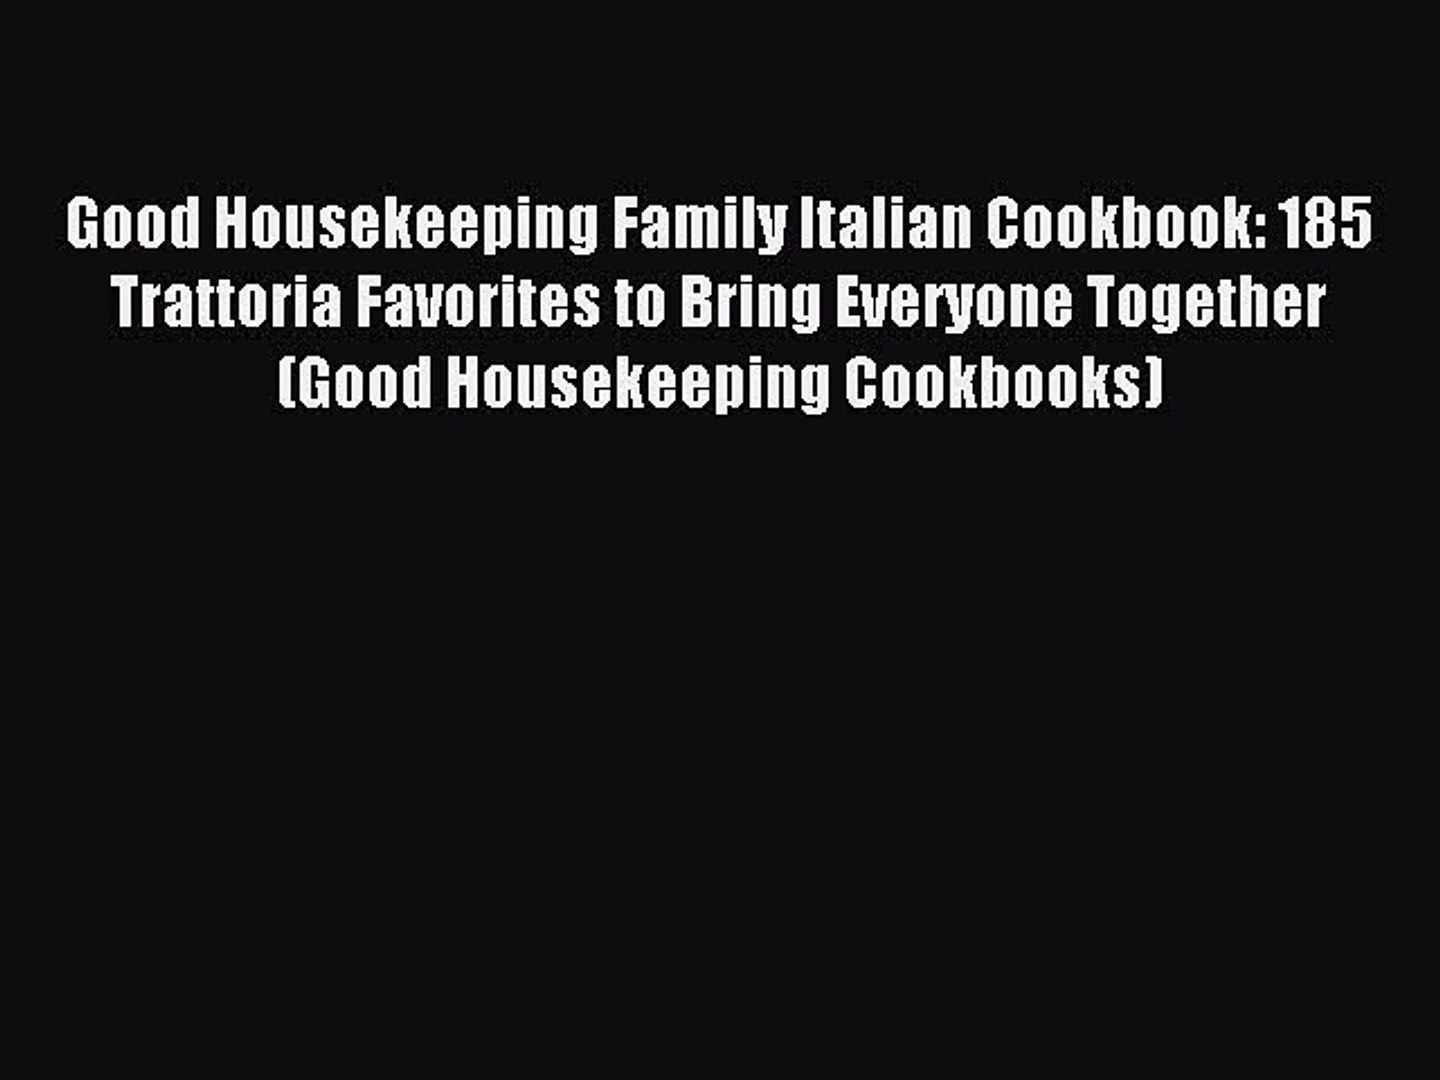 Download Good Housekeeping Family Italian Cookbook: 185 Trattoria Favorites to Bring Everyone